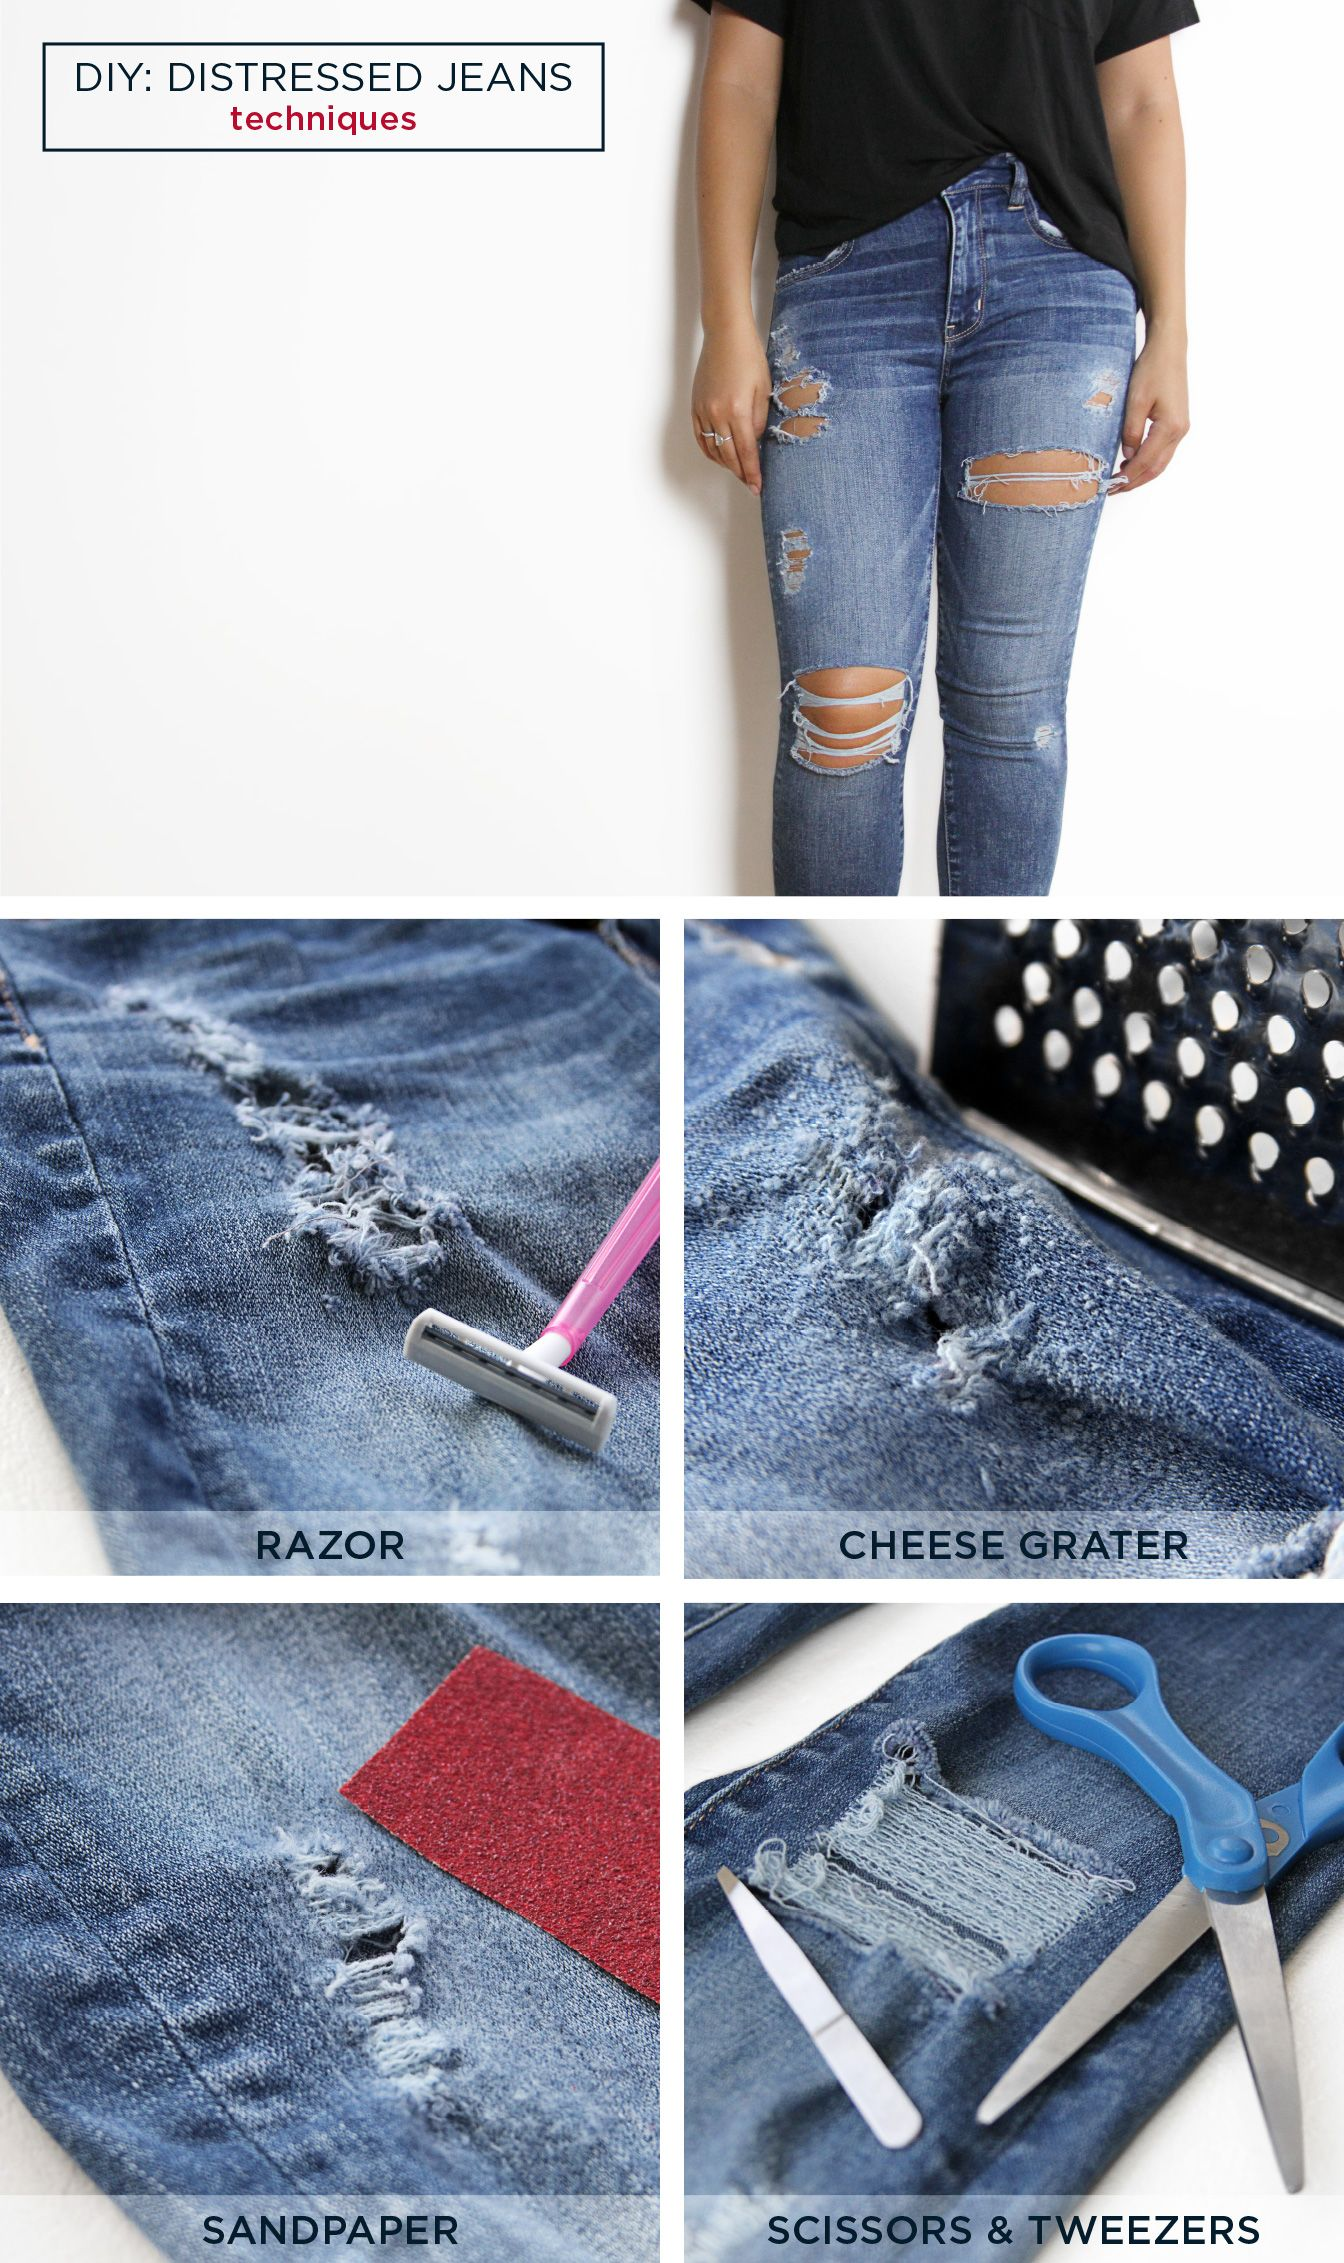 DIY: Distressed T-Shirt and Jeans